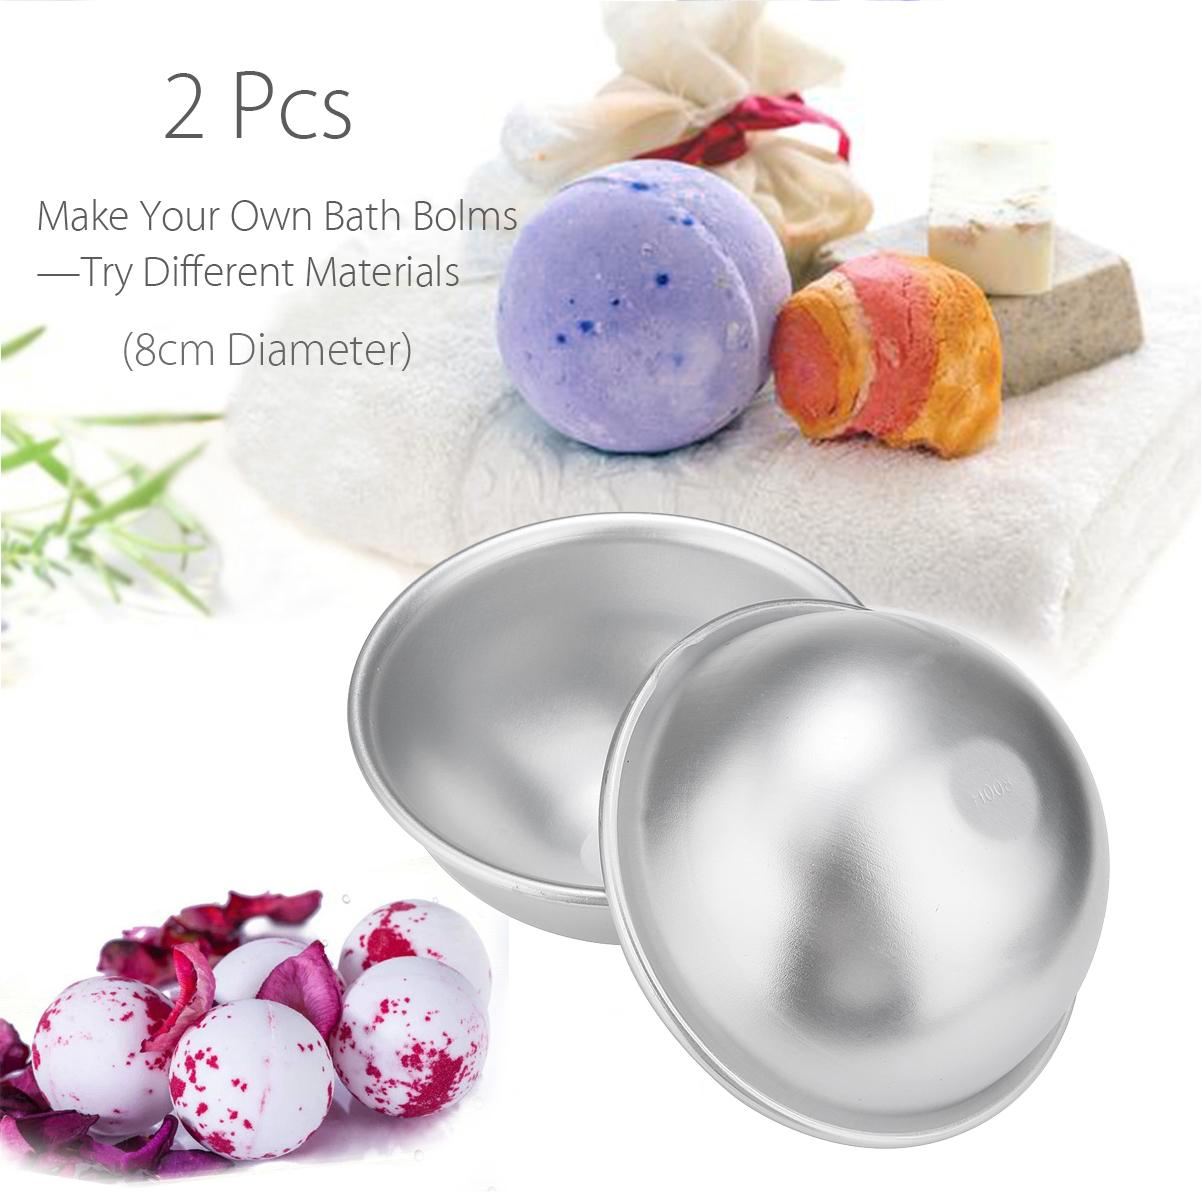 2pcs 8cm Bath Bomb Mold 3D Metal Aluminum Alloy Ball Sphere Shape Bath Salt Bomb Handmade DIY Bathing Salt Making Tools D19011201